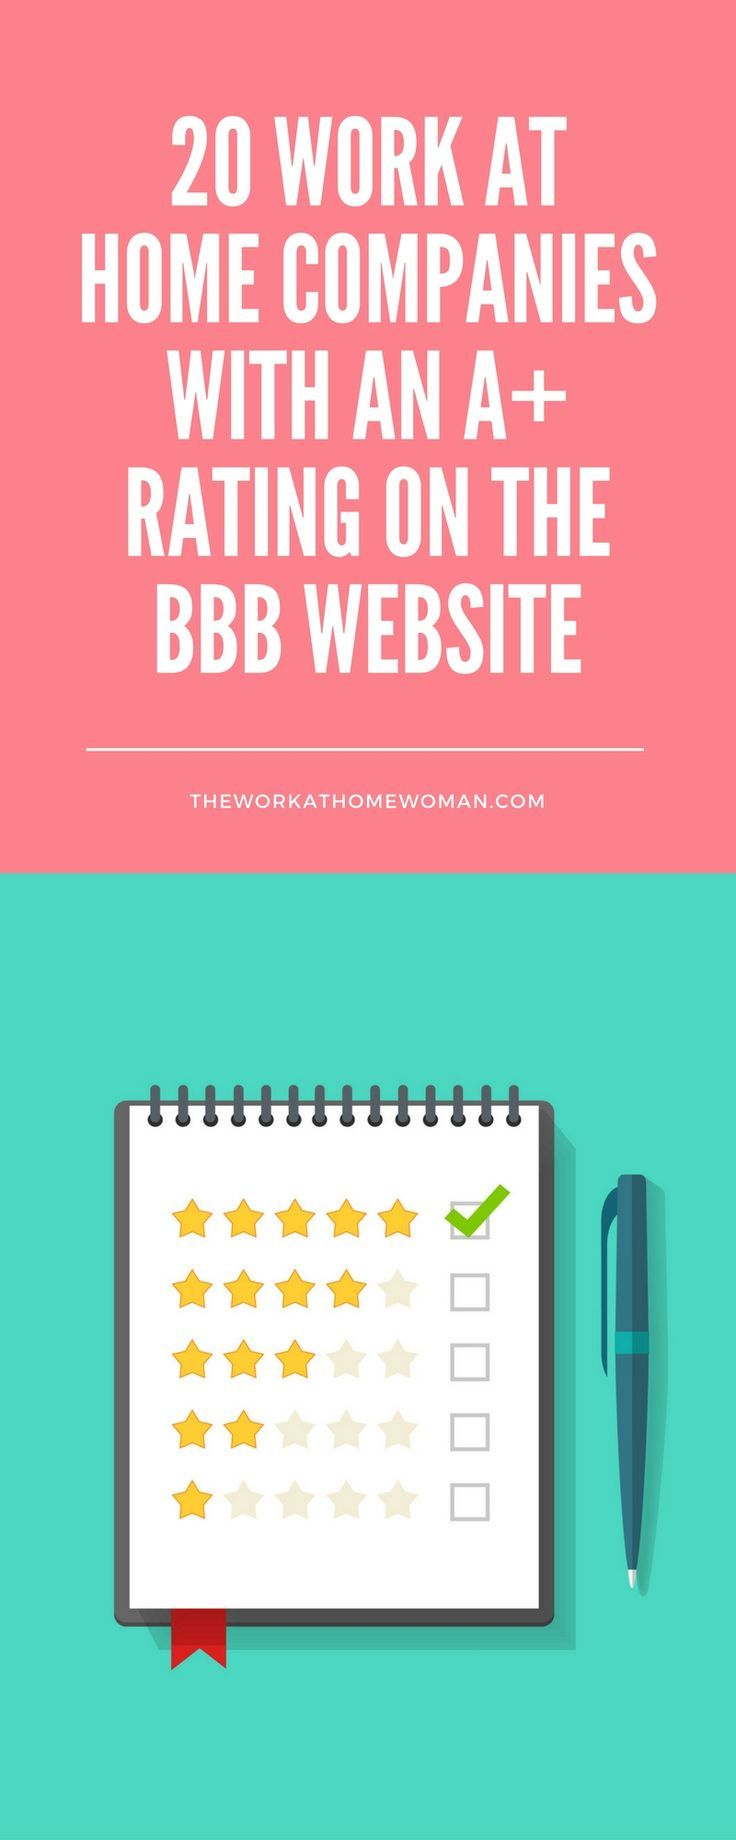 To help take some of this uncertainty out of your job search, I've put together a list of 20 work at home companies that have an A+ rating with the Better Business Bureau.